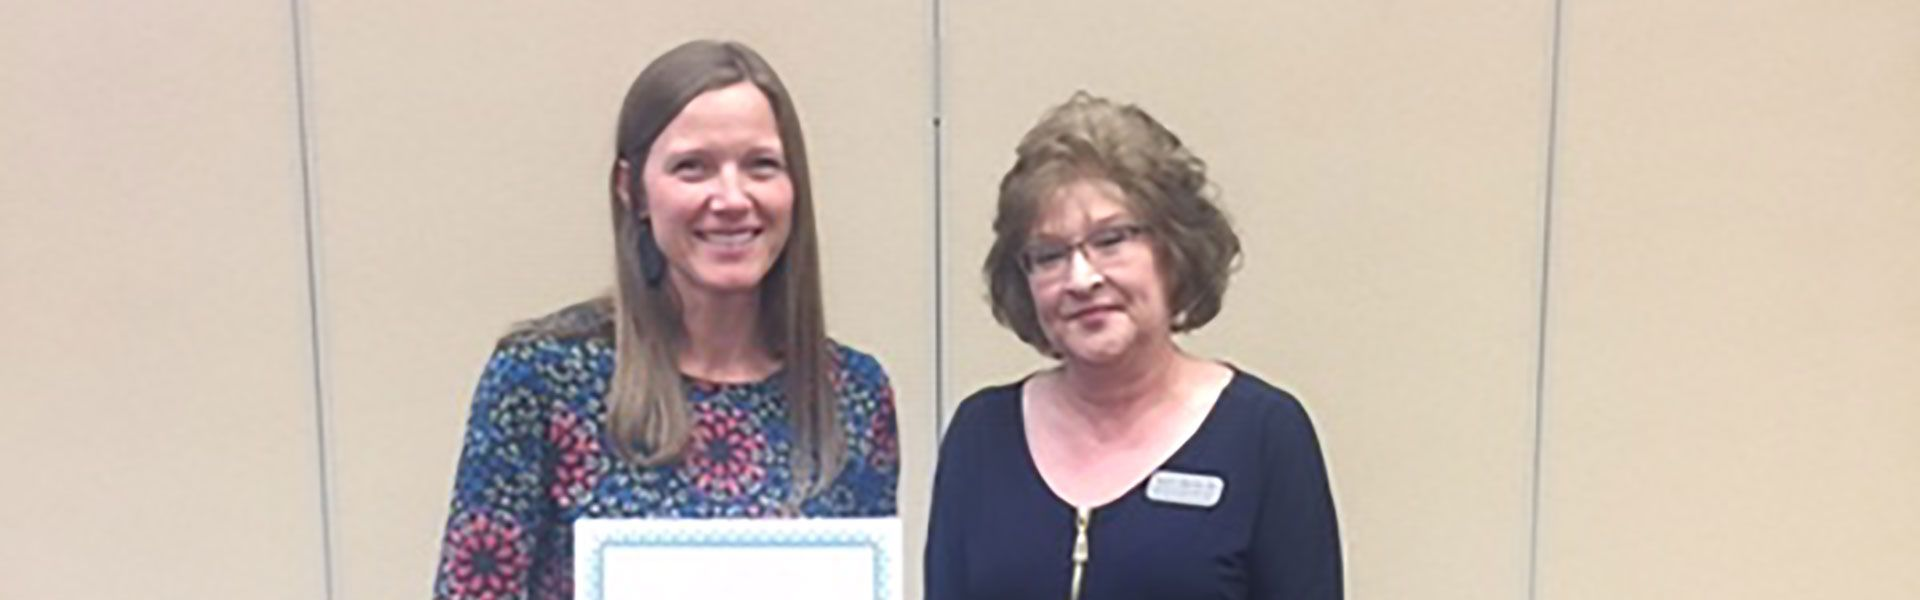 Honoring Mary Tuck, Speech Therapist at Lebanon Middle and High Schools